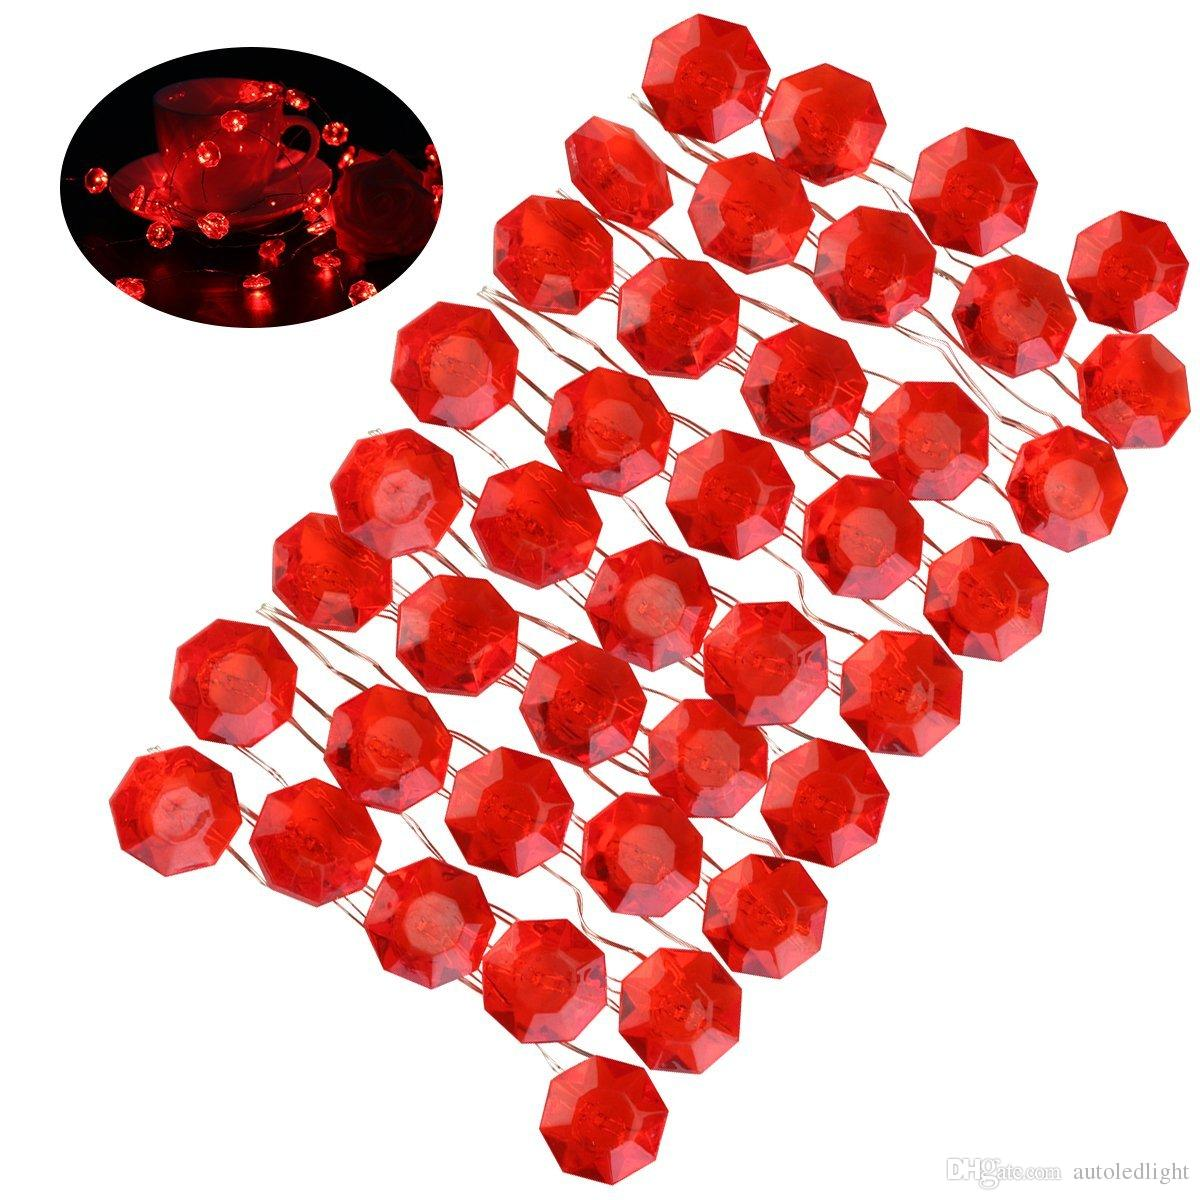 Valentine String Lights Red Diamond Copper Wire Lights - 10 Ft. Long, 40 Lights, 7 Light Modes